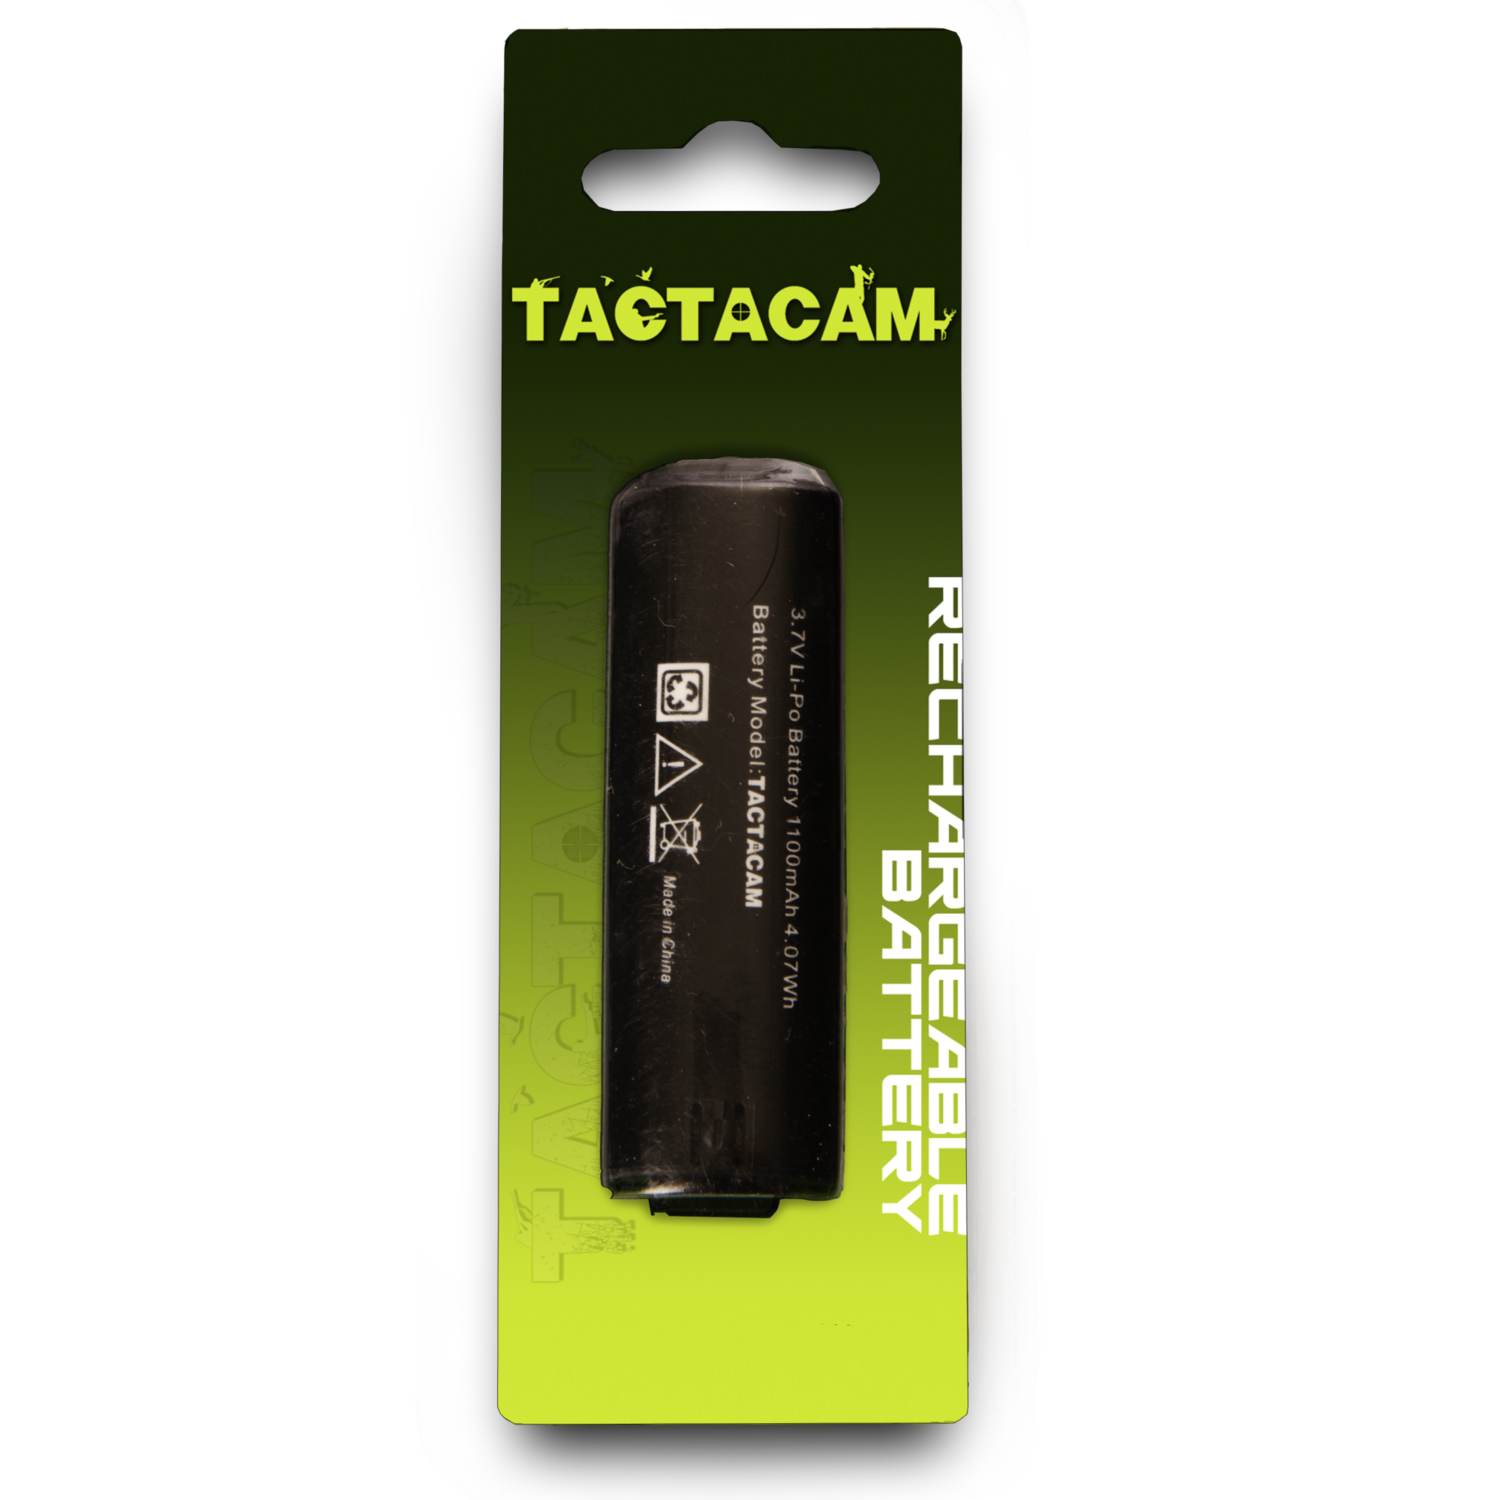 Tactacam Rechargeable Battery For 3.0, 4.0 and 5.0 Cams Only